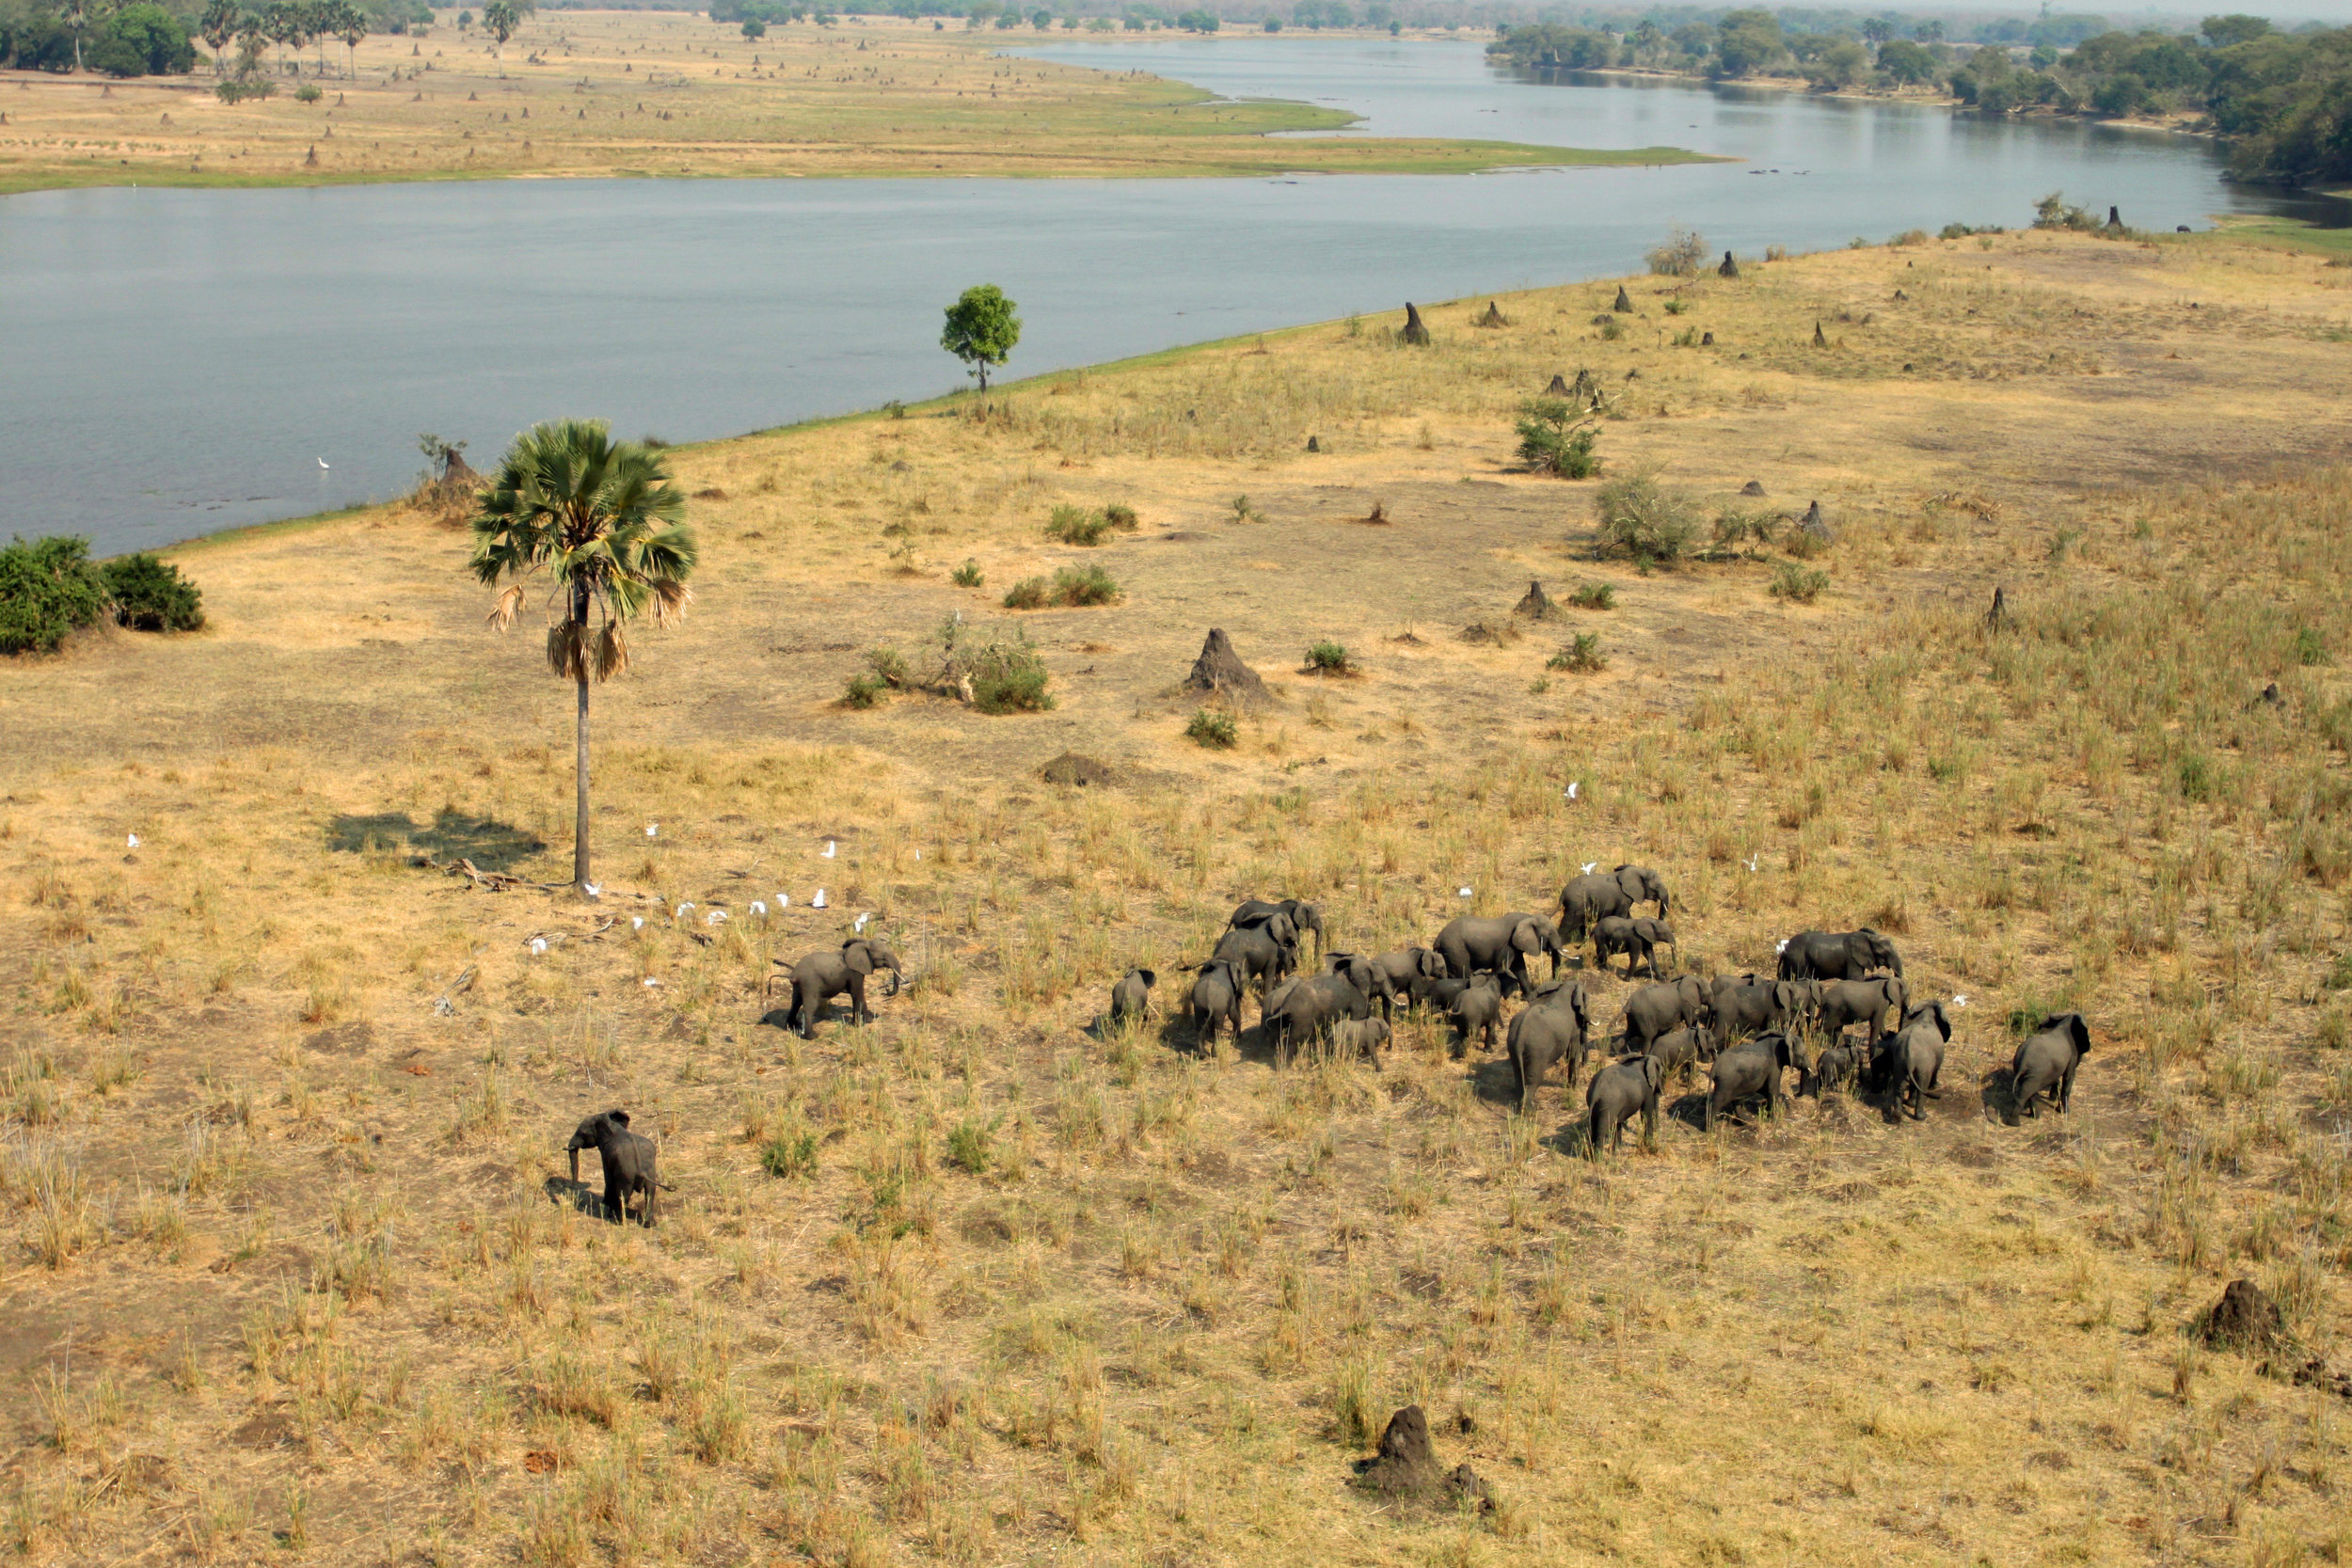 Elephants gather around the Shire River during the dry season at Liwonde National Park.